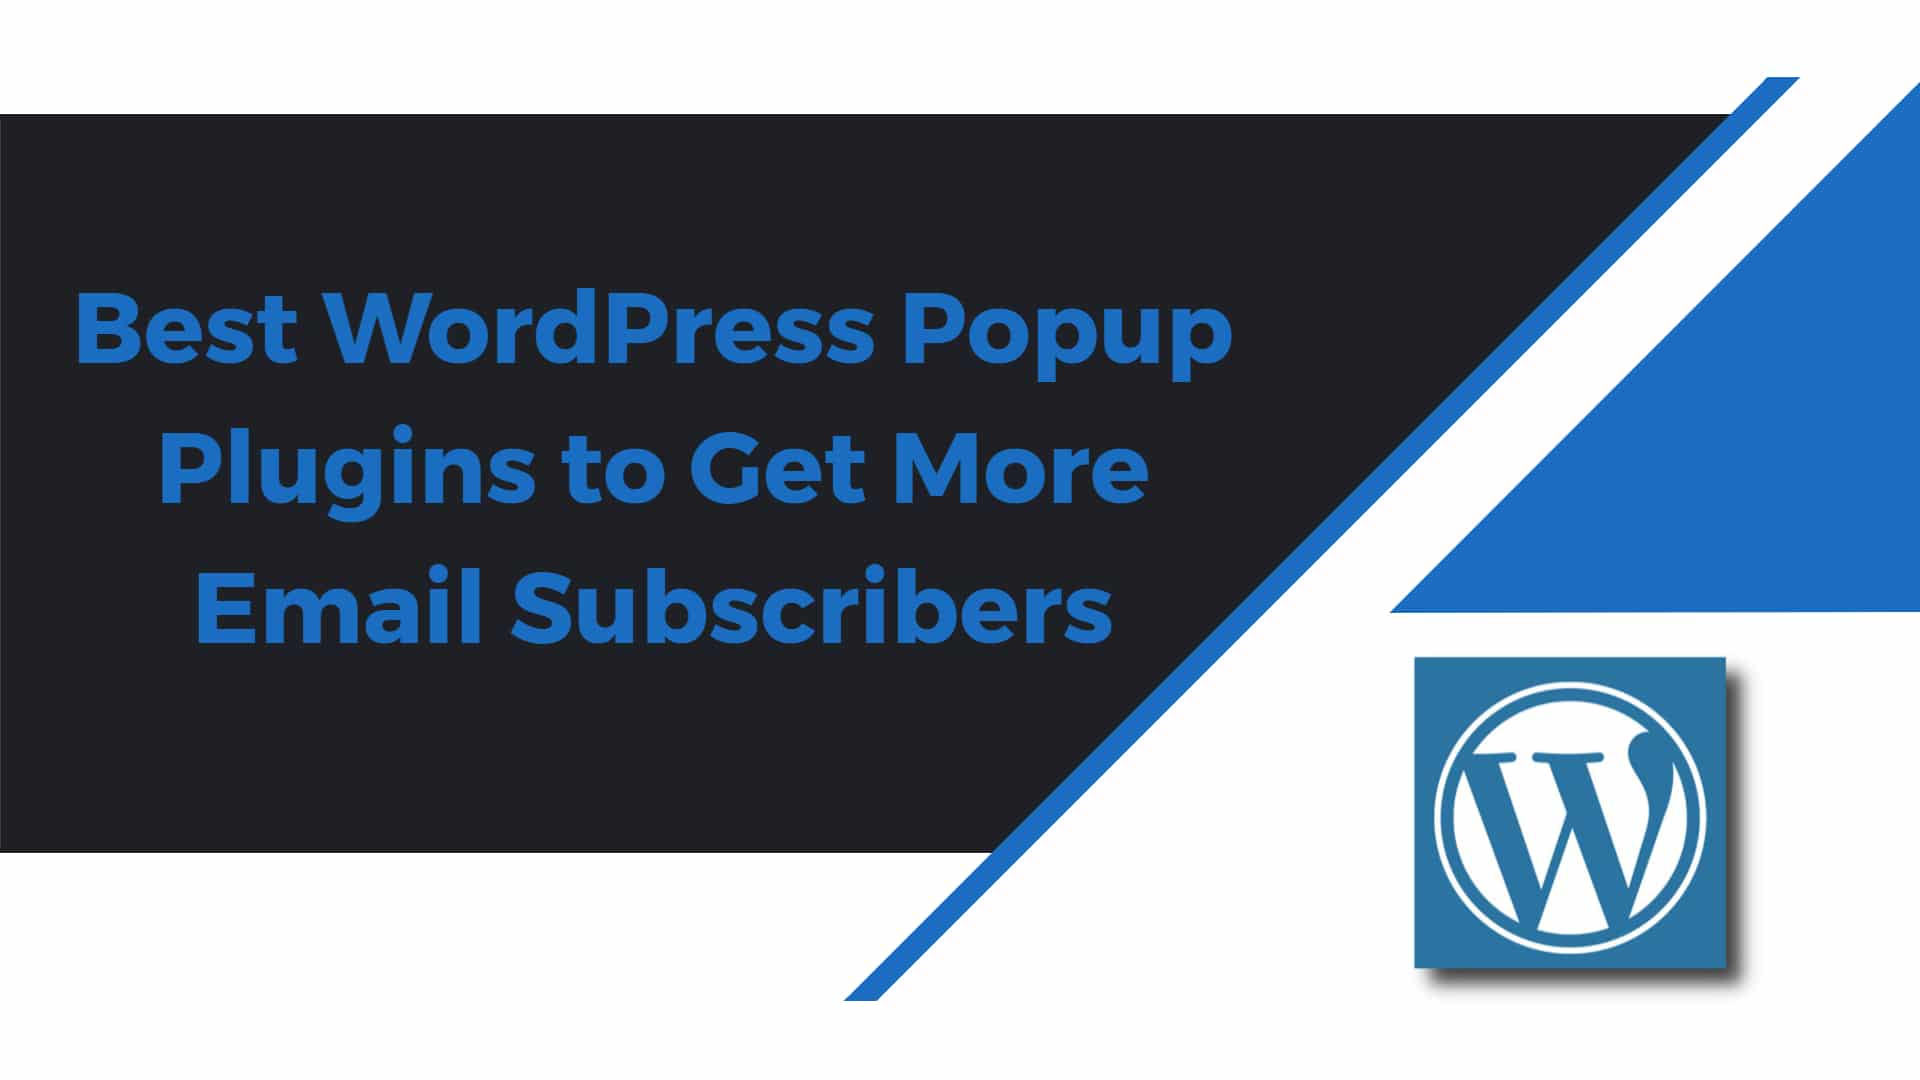 Best WordPress Popup Plugins to Get More Email Subscribers